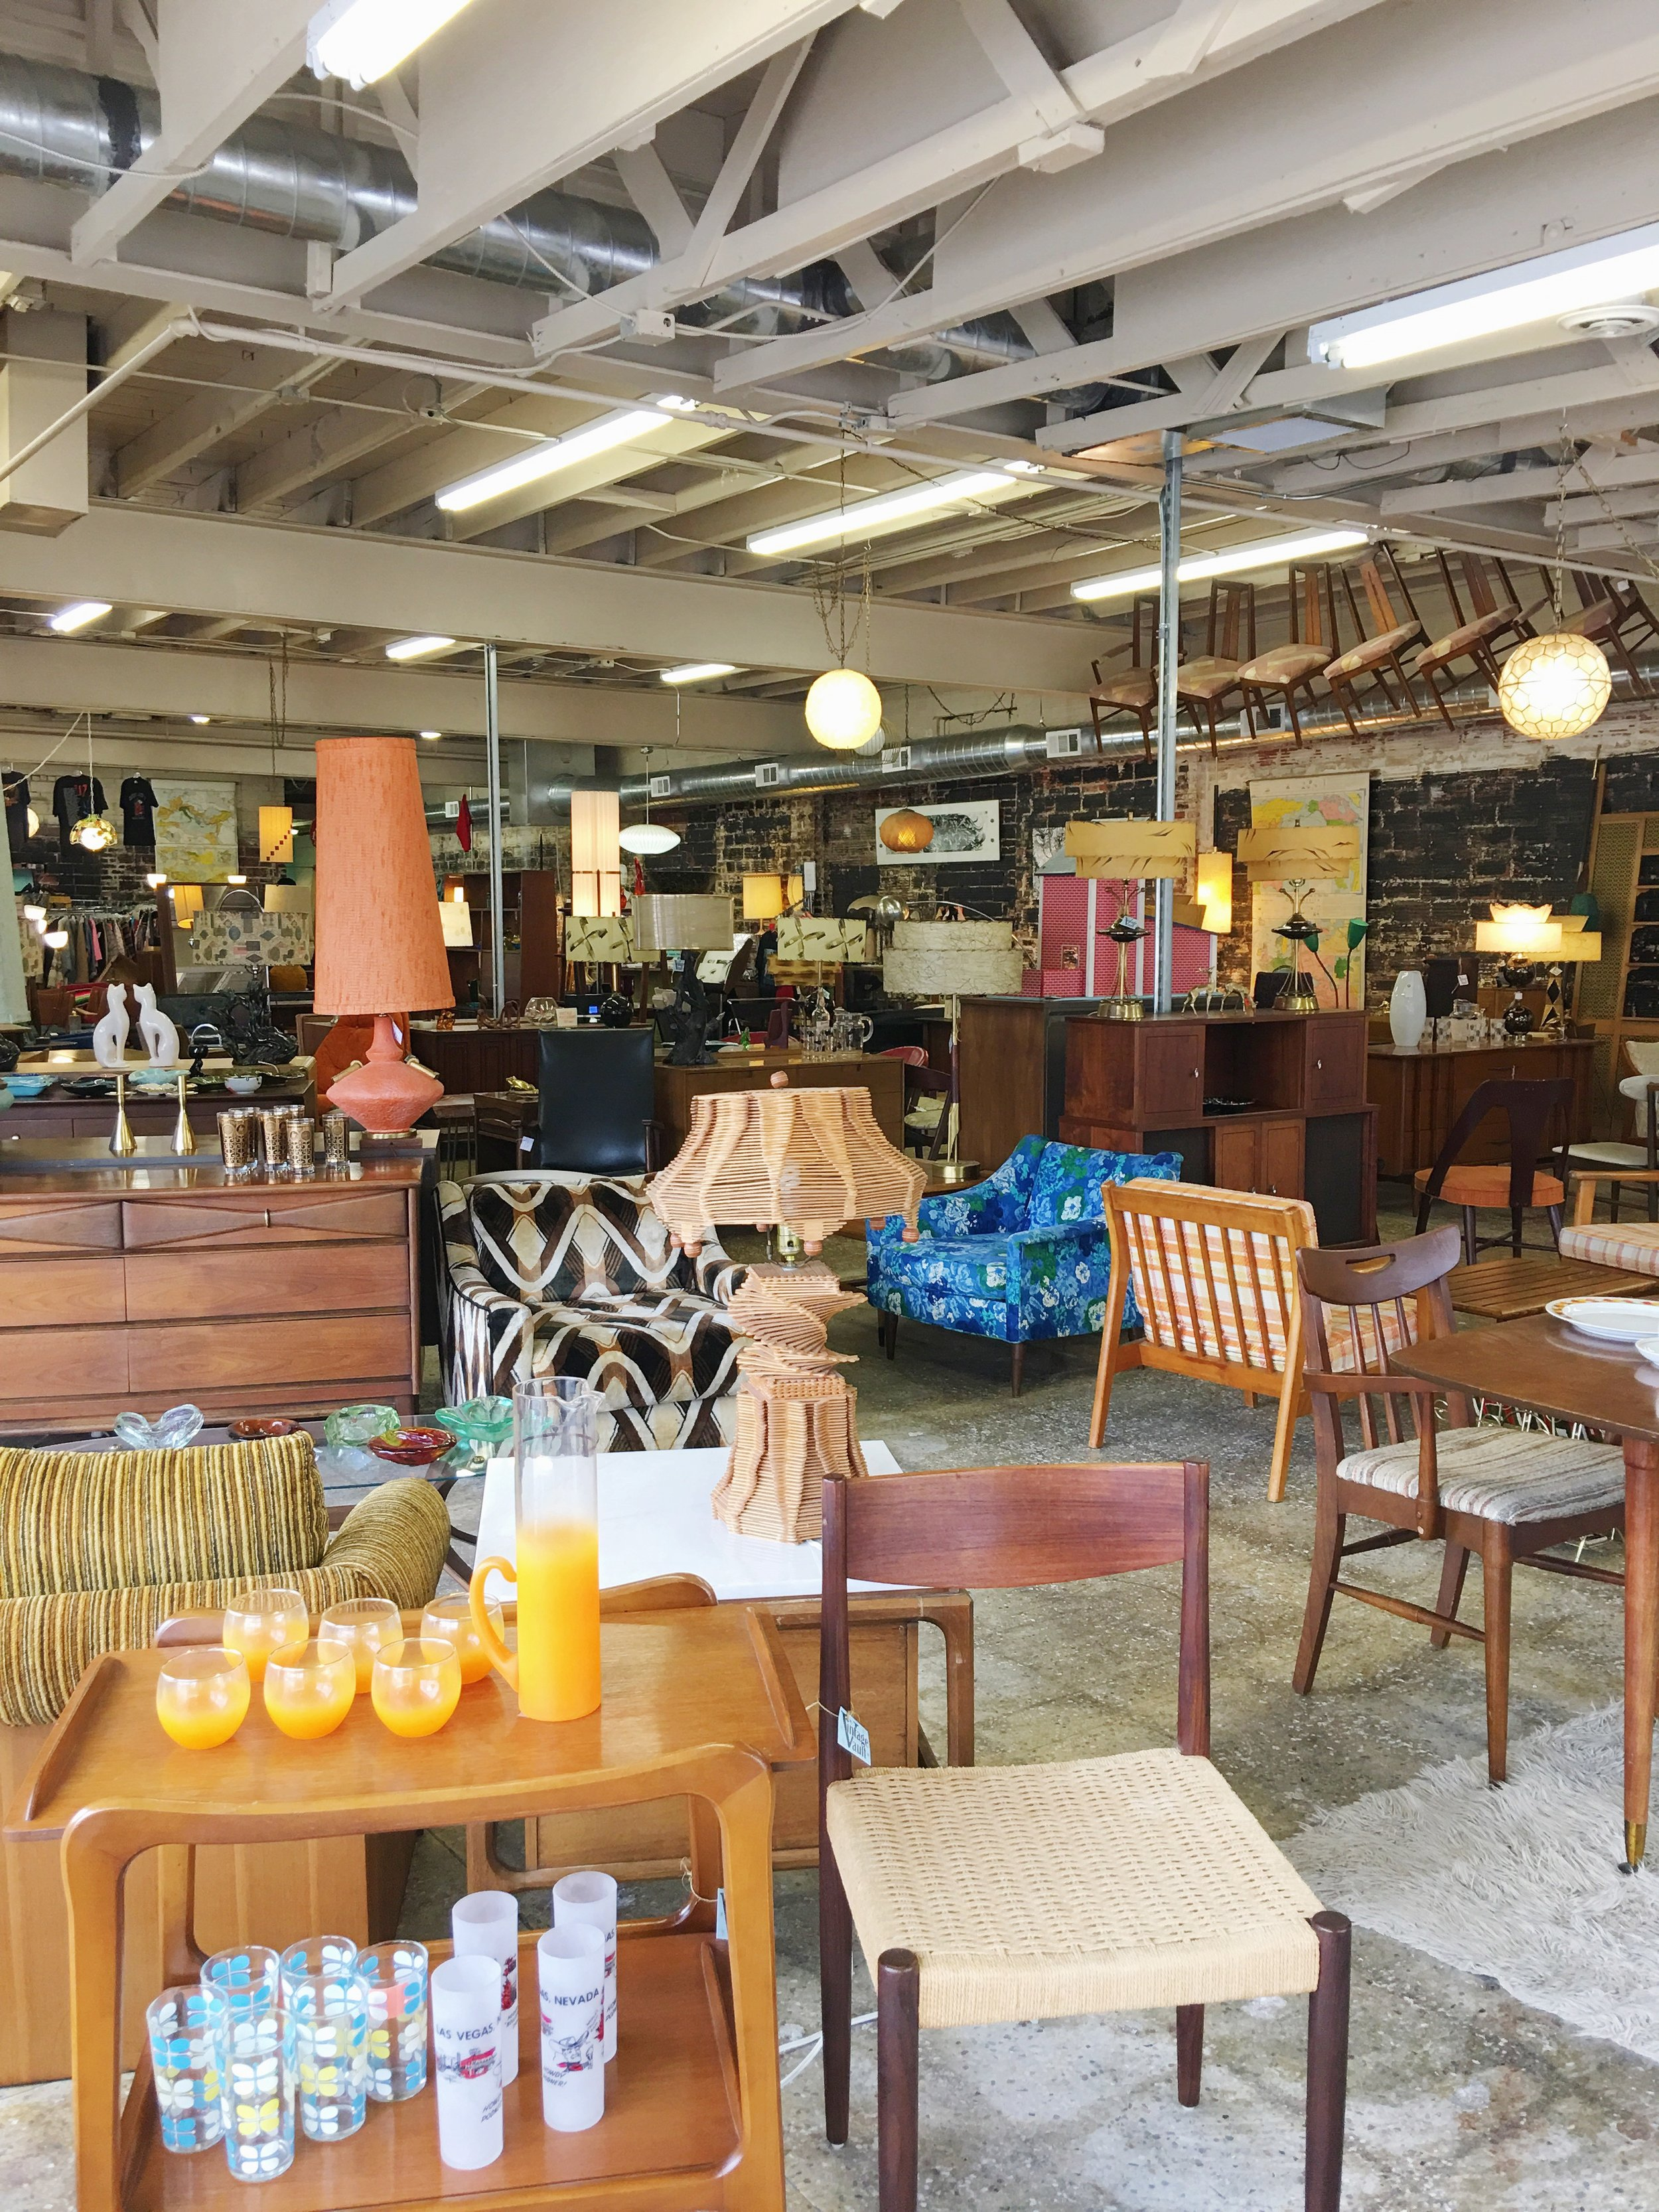 Vintage Vault carries beautiful mid-century modern furniture, decor and clothing. They are right up the street from us!